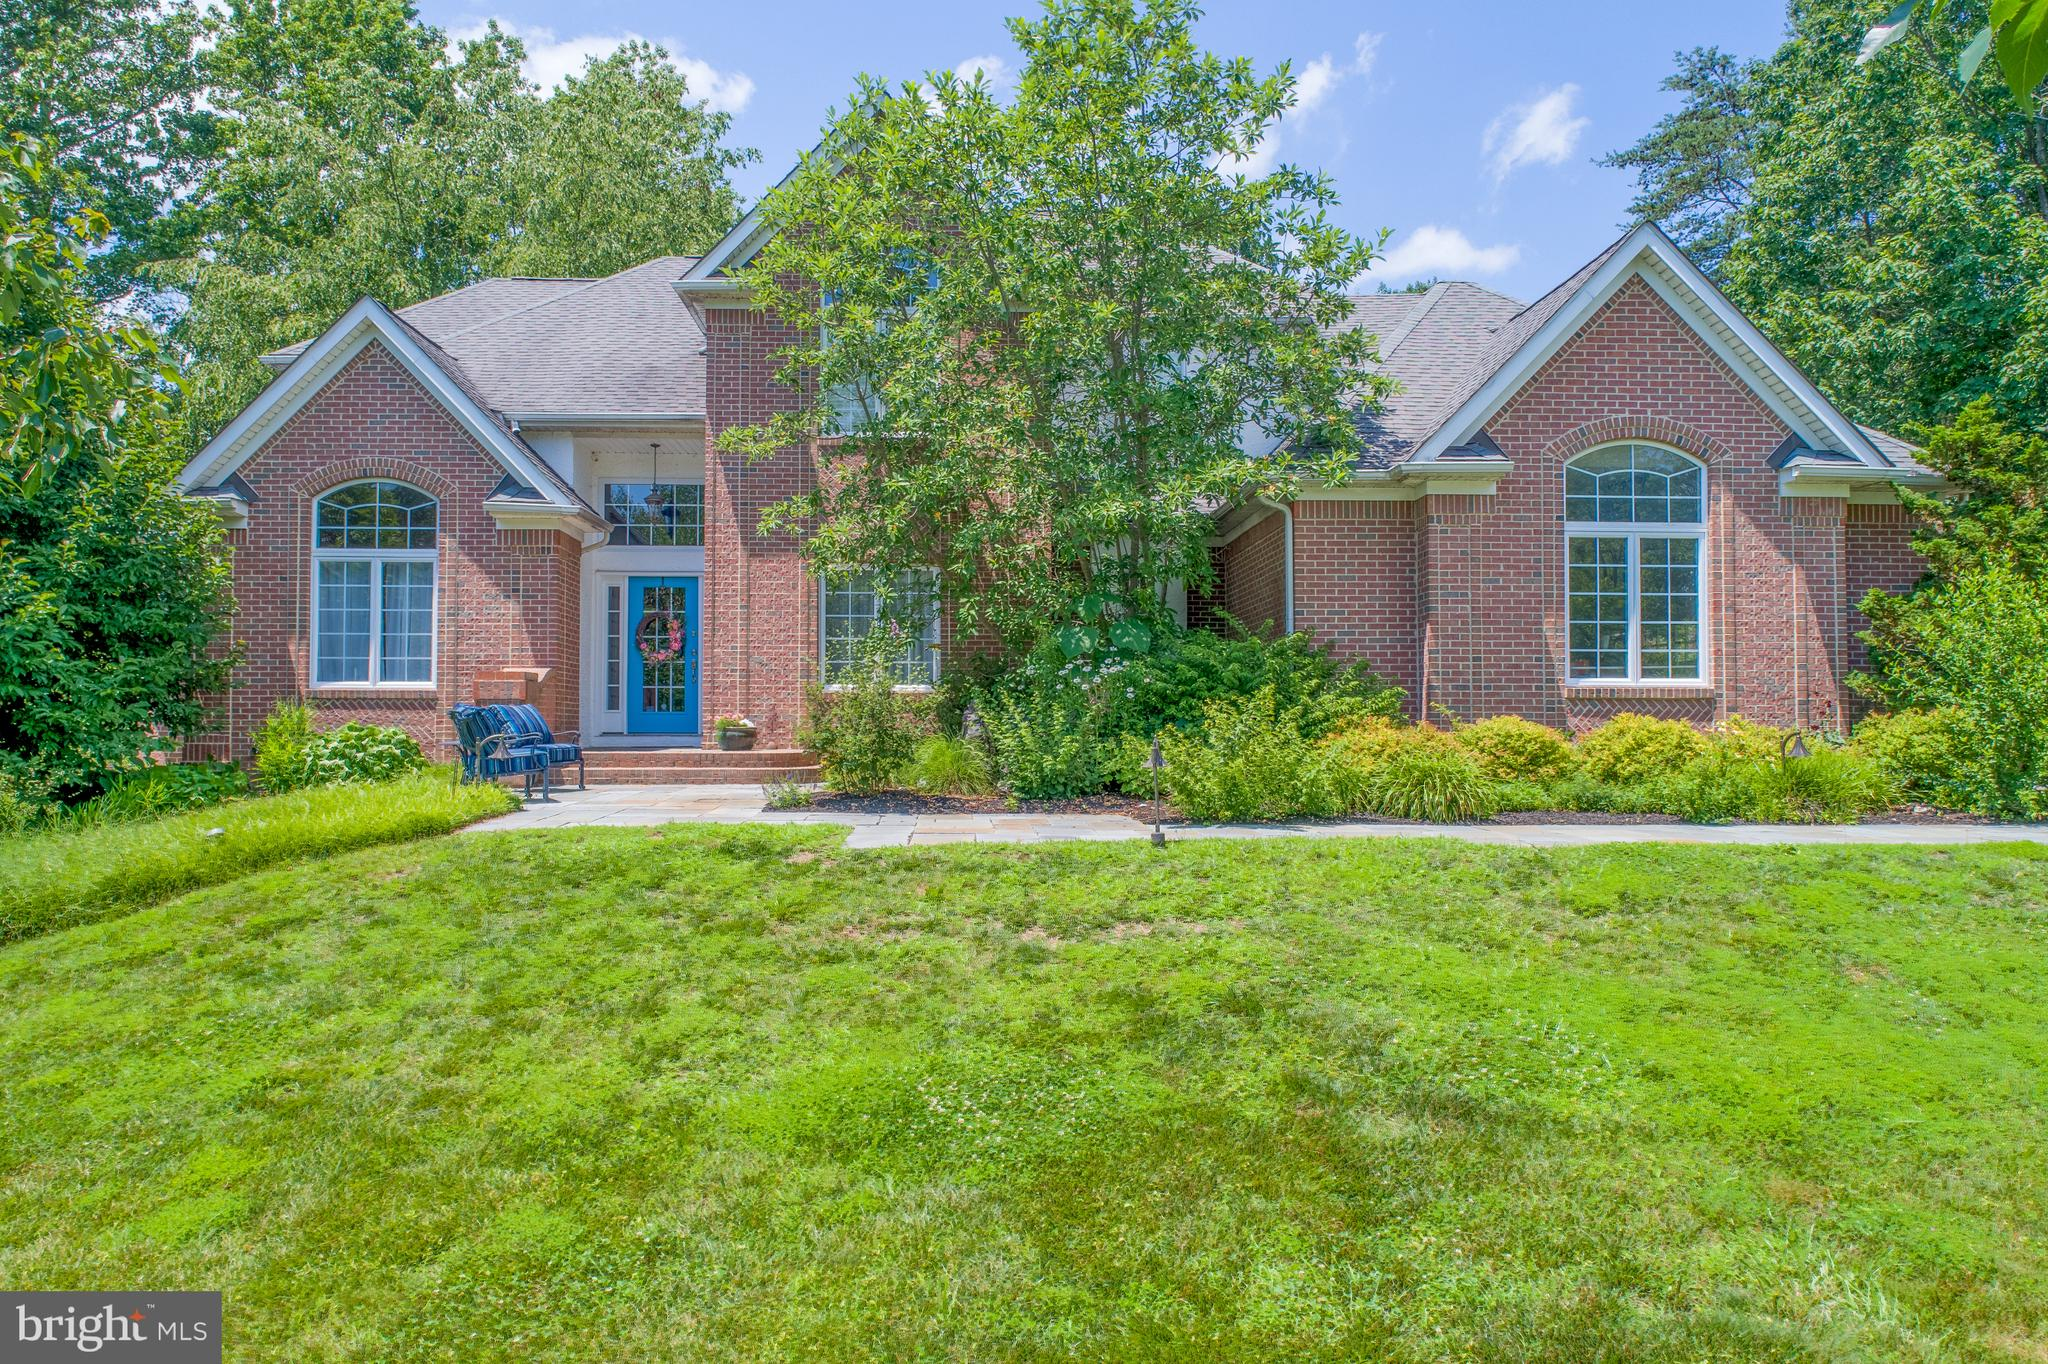 Visit this home virtually: http://www.vht.com/434079805/IDXS - SUPERB HOME IN WOODHOLME!!!-  Five be